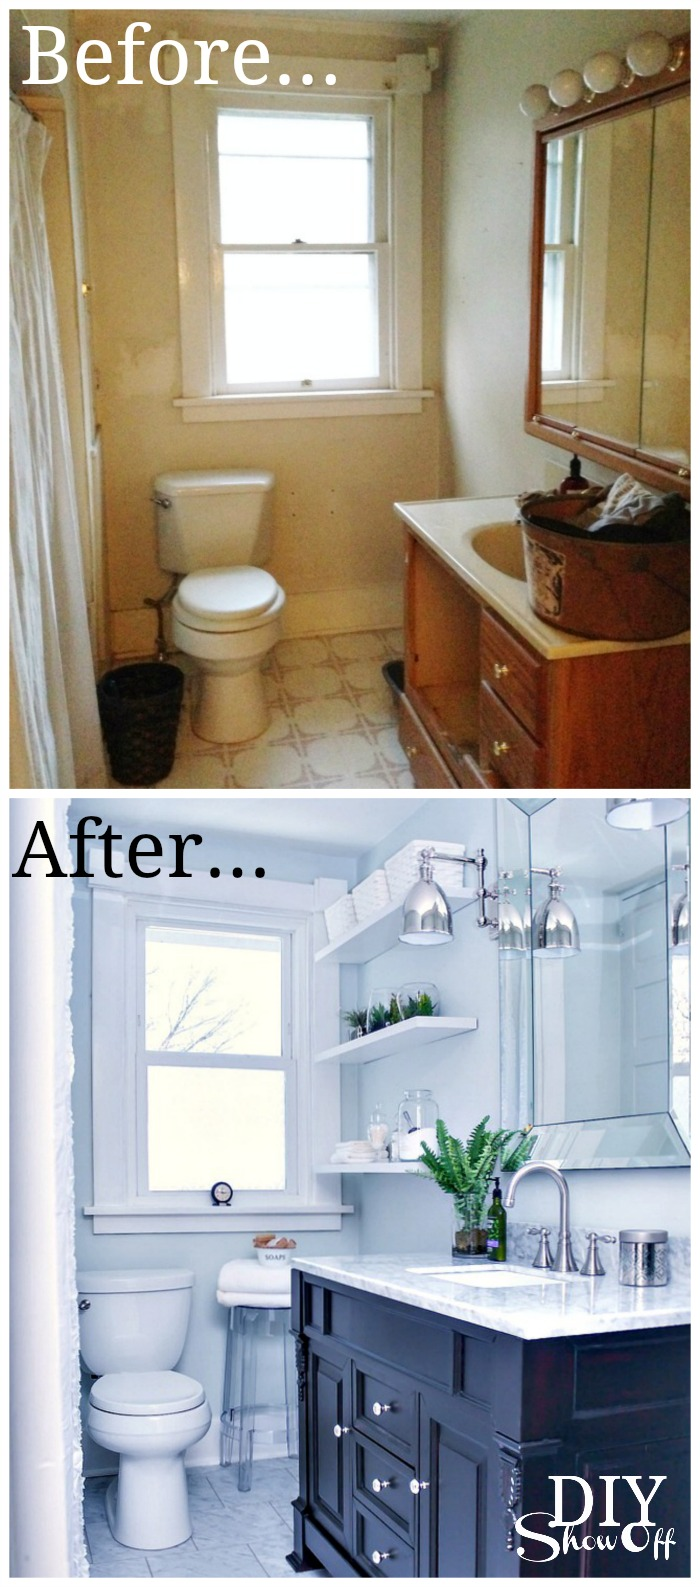 Bathroom Before And After Diy Show Off Diy